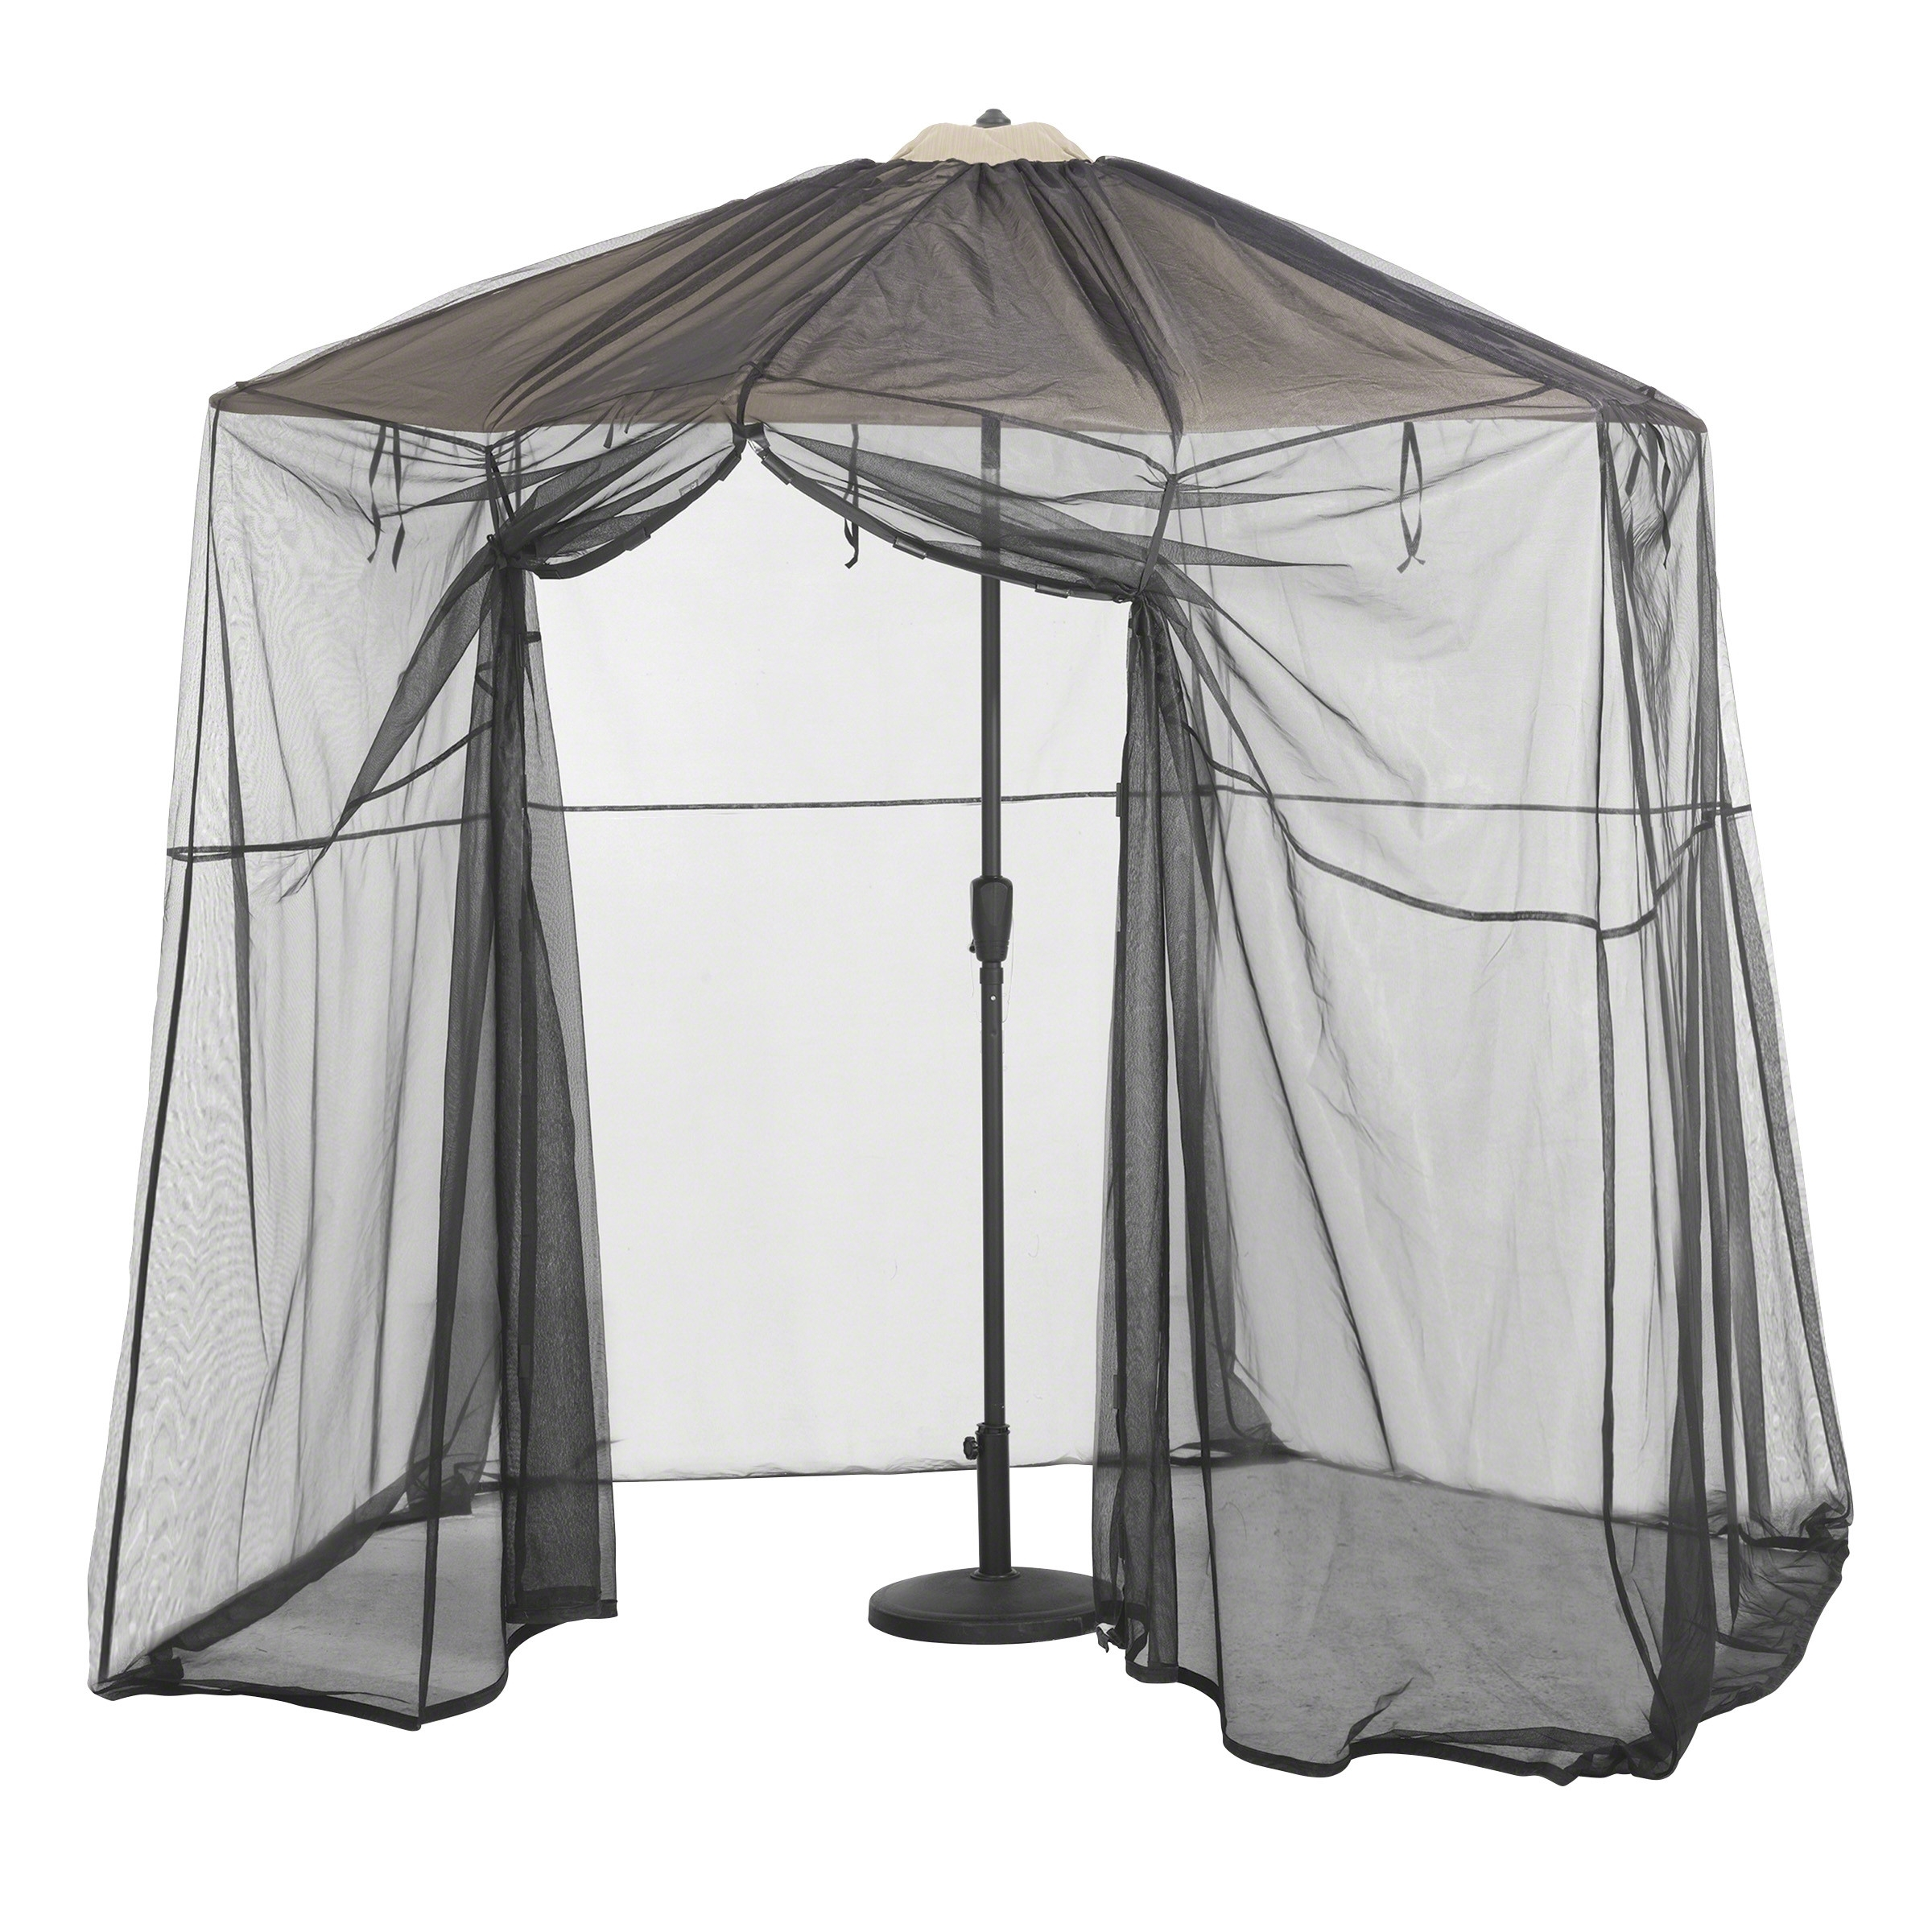 Newest Classic Accessories Patio Umbrella Mosquito Net Canpoy – Umbrella With Patio Umbrellas With Netting (View 13 of 20)